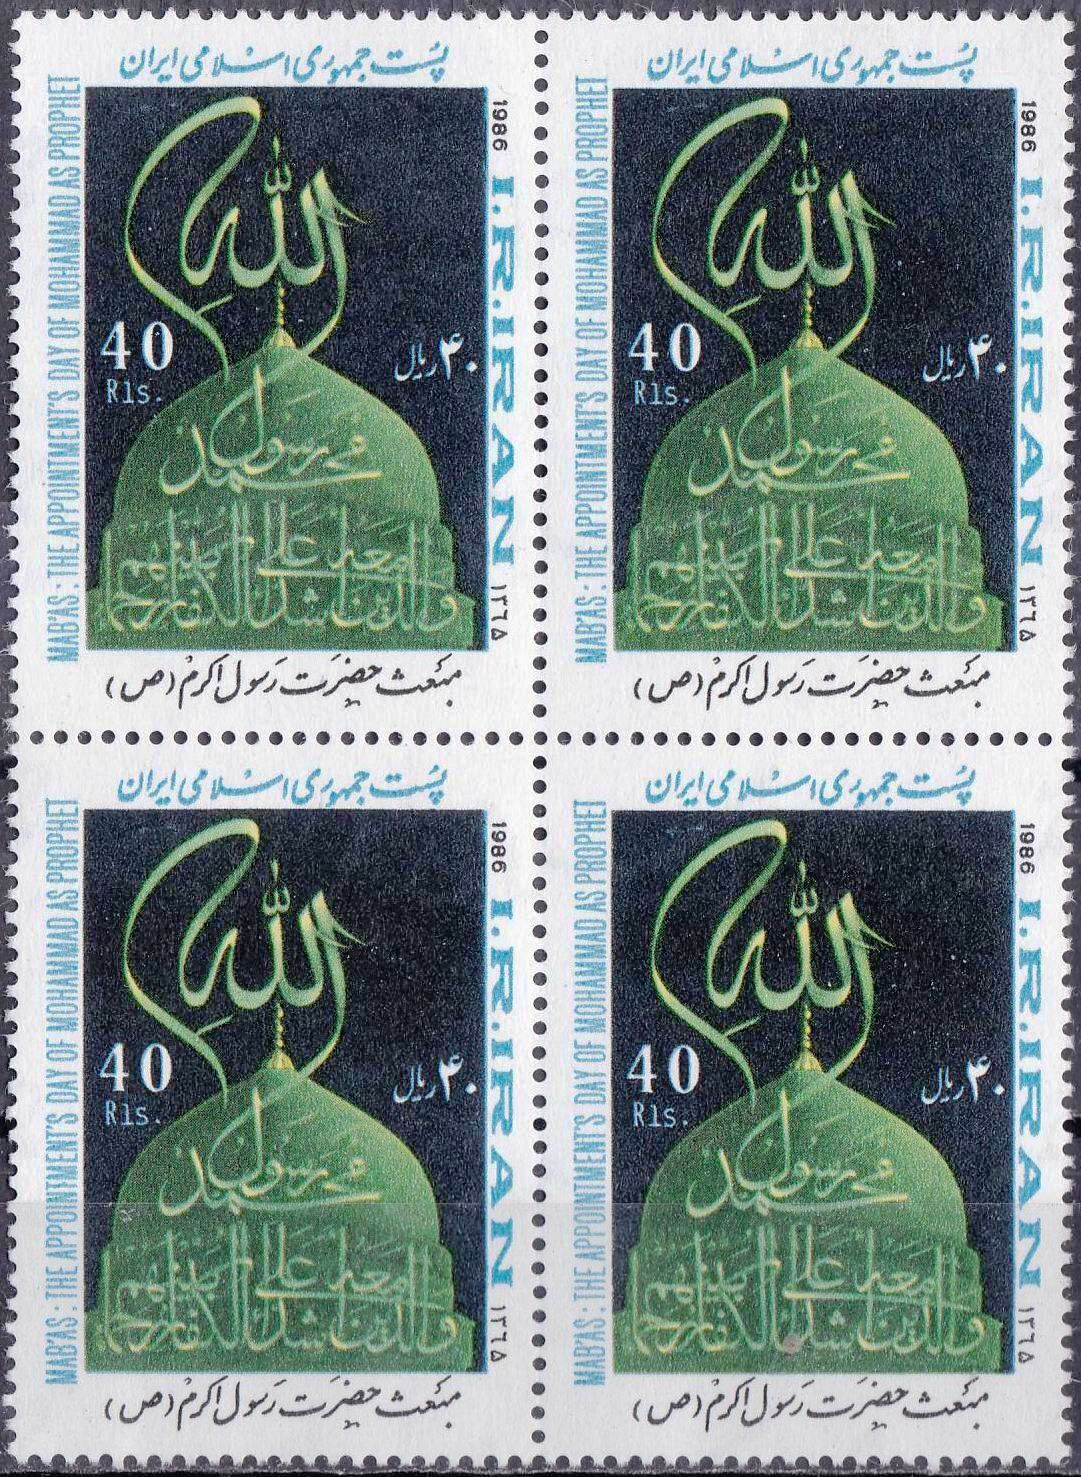 Iran 1986 Stamps Mabas Prophet Mohammad PBUH Appointment Week